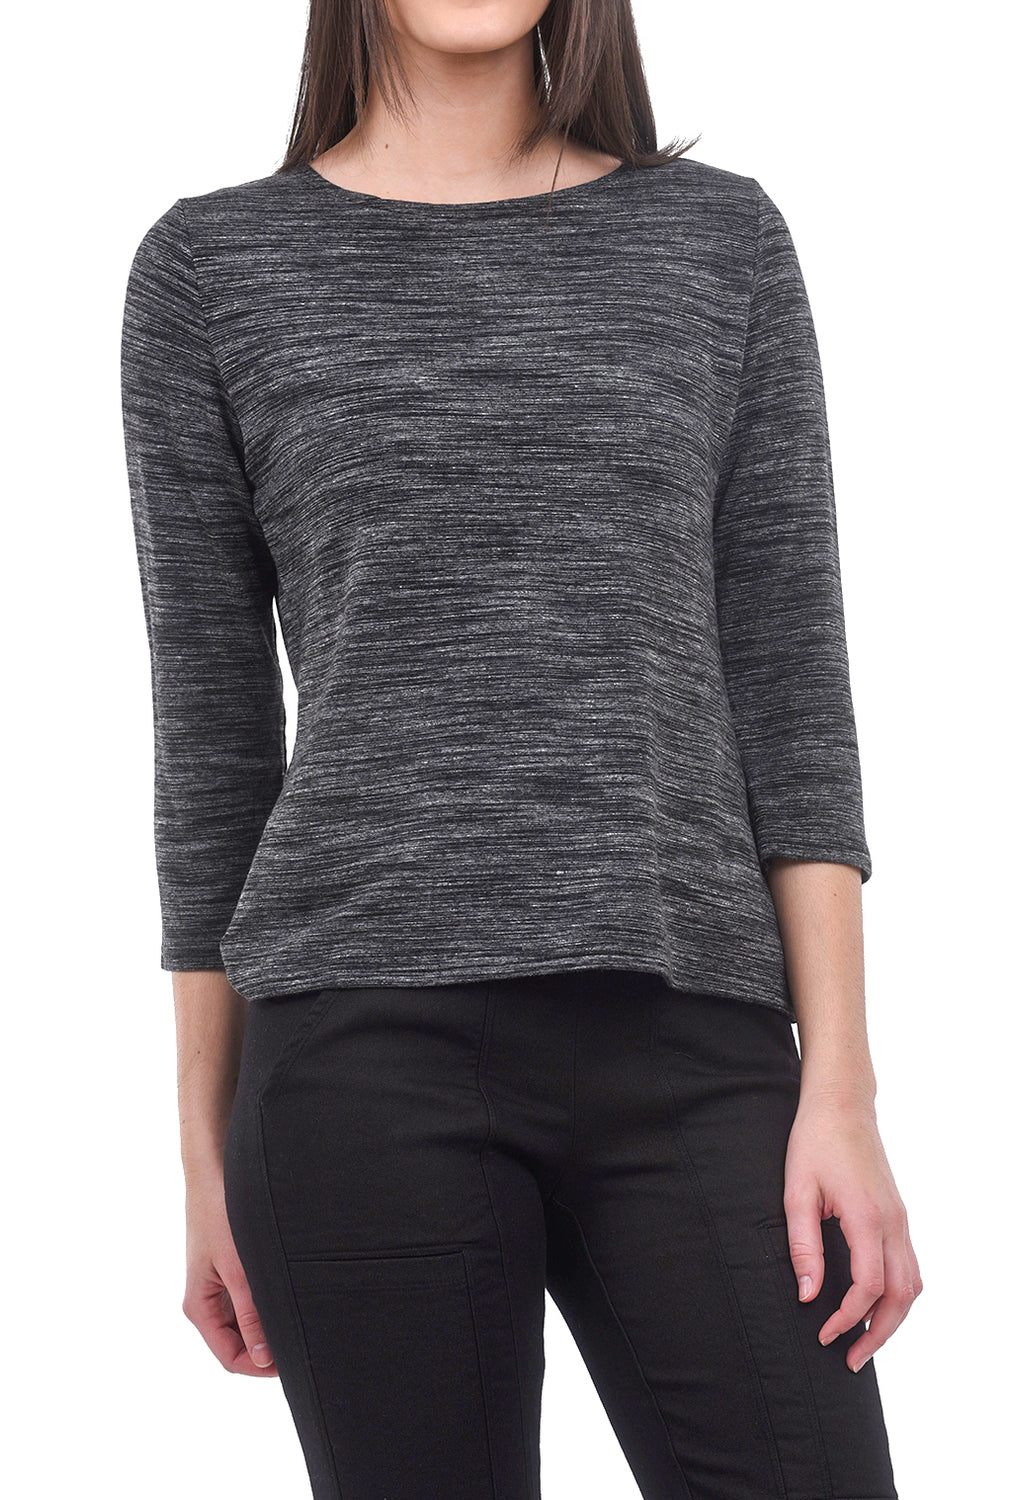 Cut Loose Marled 3/4 Boatneck Top, Laundered